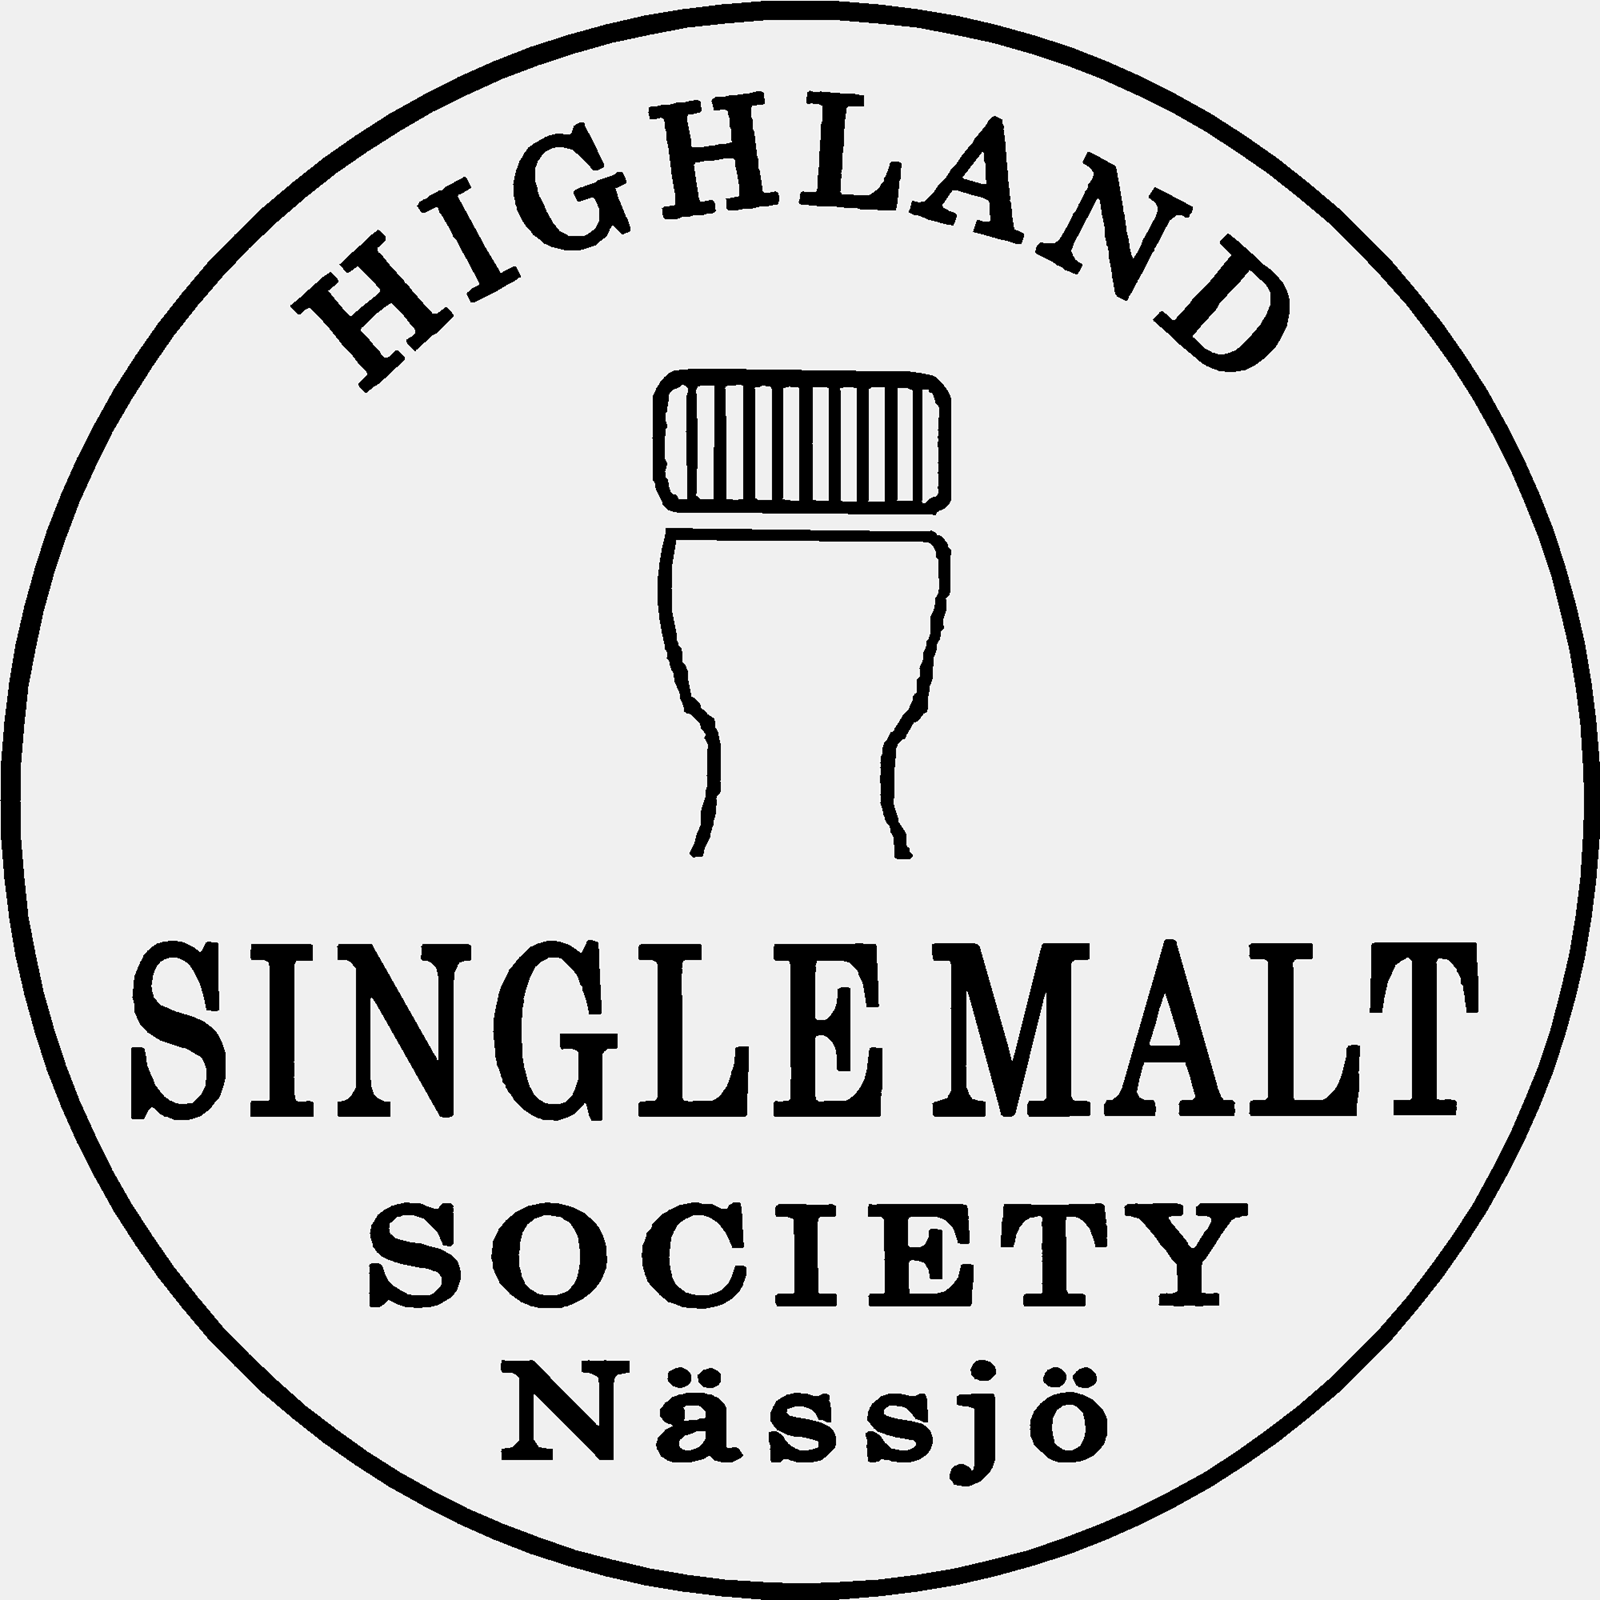 Highland Single Malt Society